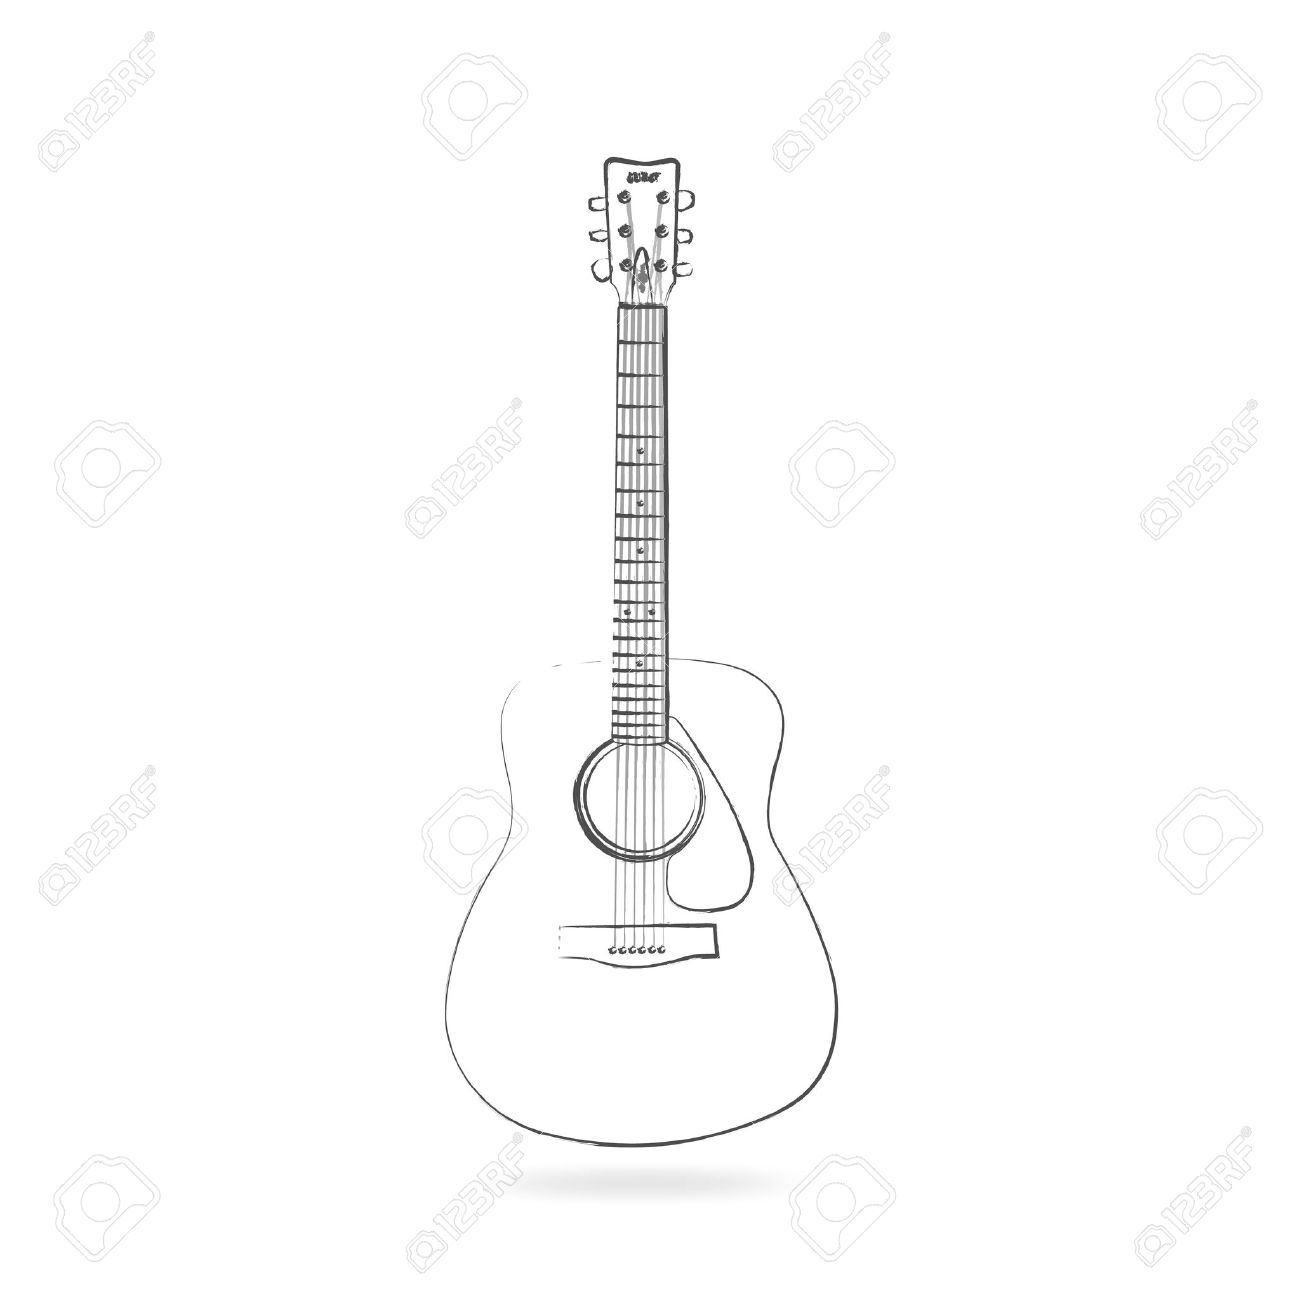 1300x1300 Drawing Of An Acoustic Guitar Isolated On A White Background